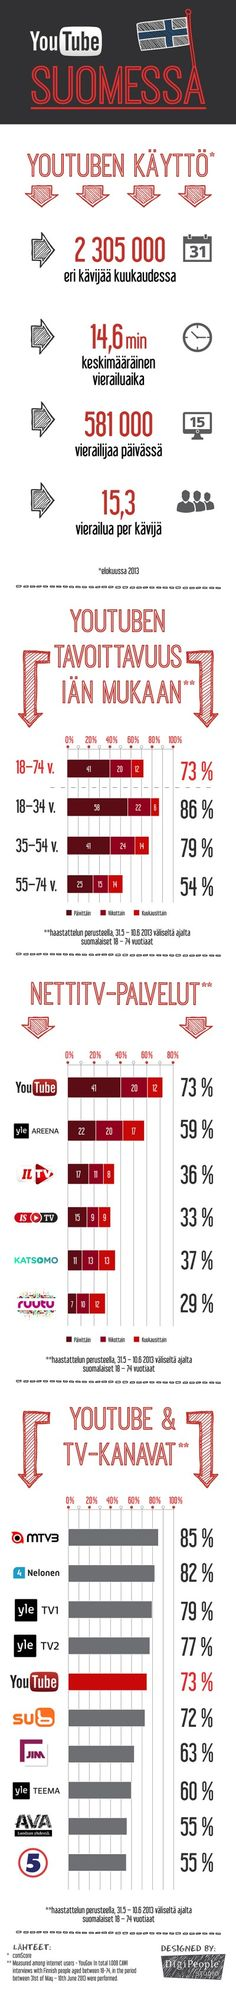 DigiPeople-Studio-YouTube-Suomessa-infograafi Social Media Digital Marketing, Sales And Marketing, Content Marketing, Social Media Marketing, Think, Mobile Learning, Get Excited, Good People, Youtube